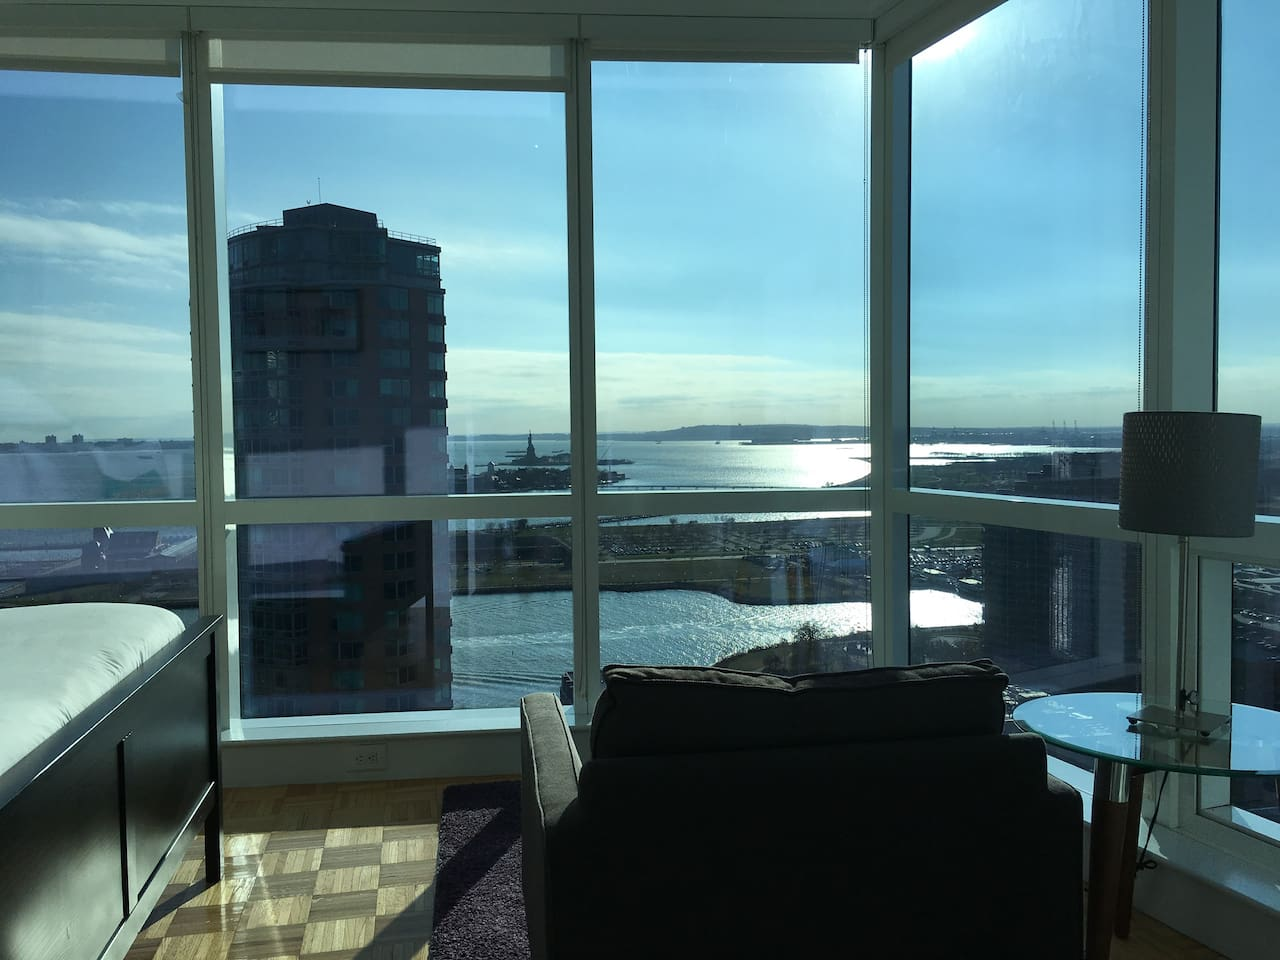 Premium One Bedroom Apartment Has Stunning View That Provides A Serene Yet Sensational Balance. Sit Here While The Sun Is Setting And You're in For A Treat